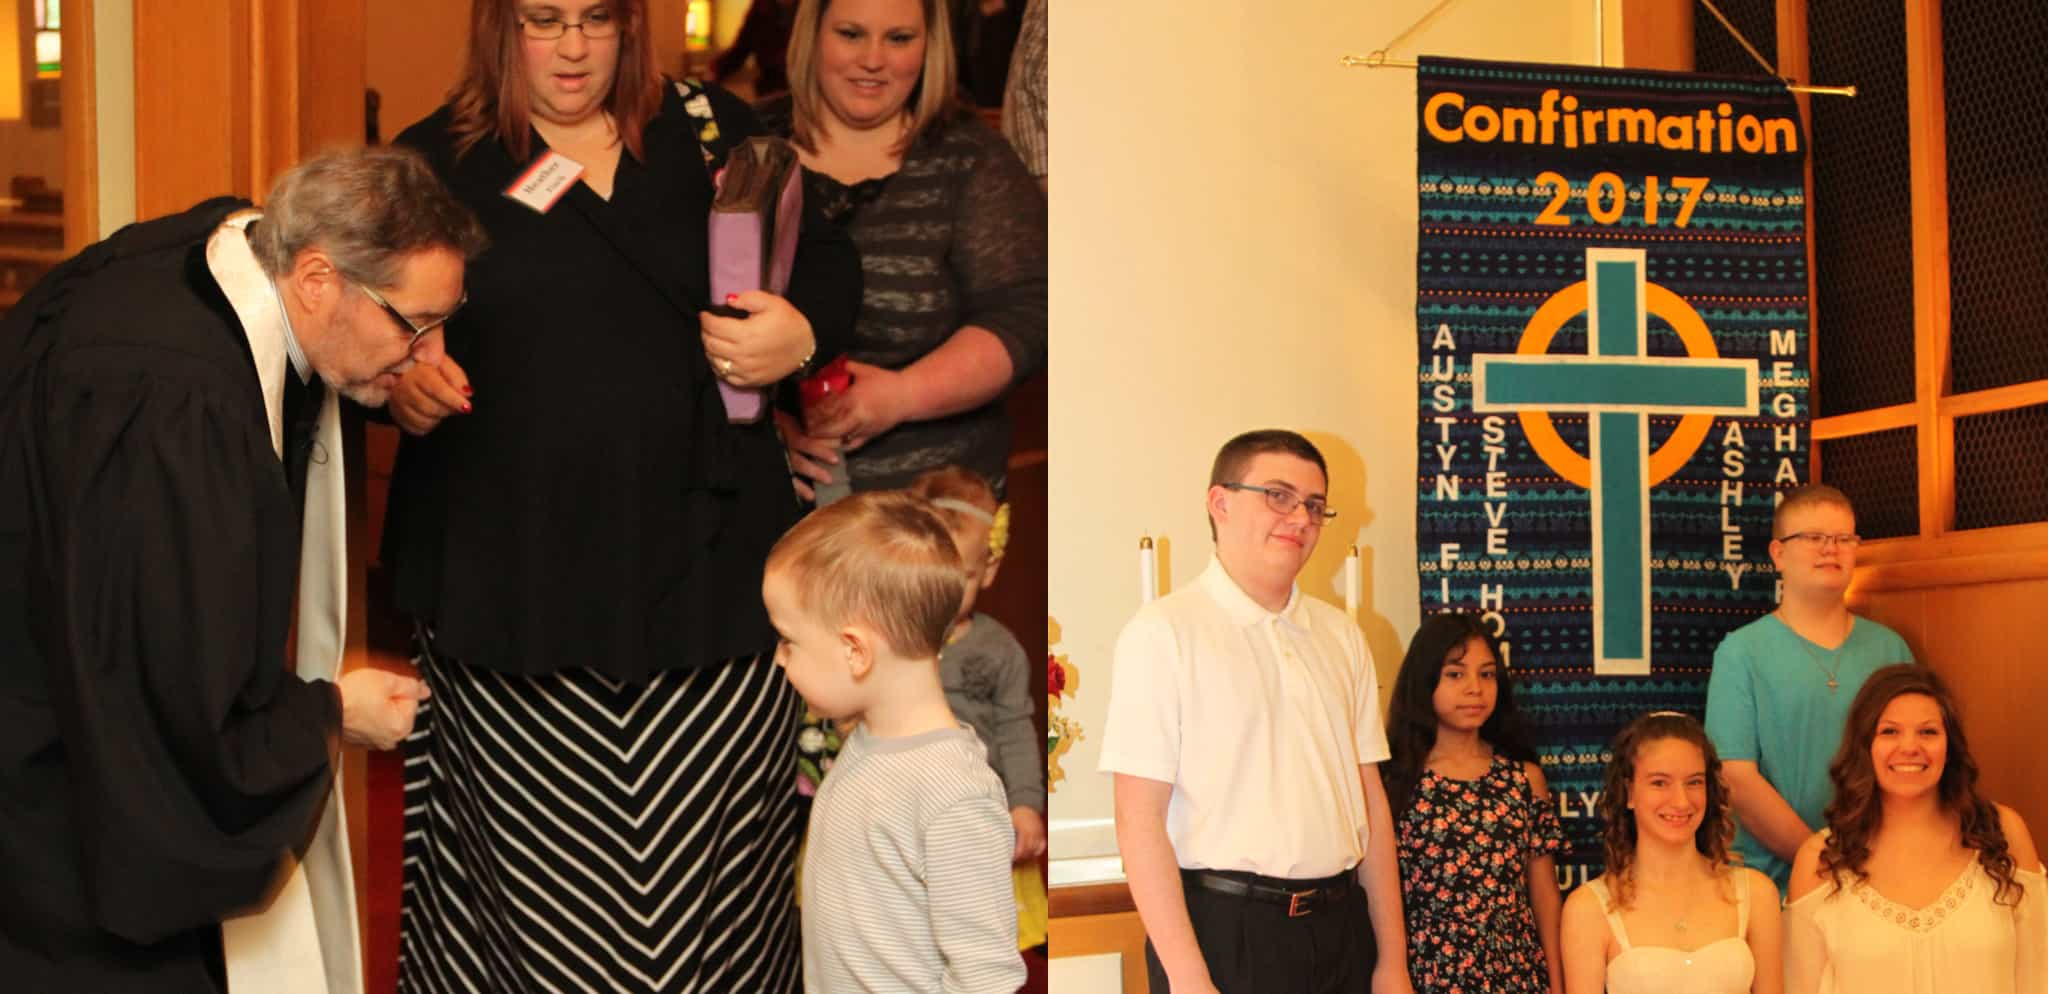 st-lukes-united-church-of-christ-independence-mo-children-confirmation.jpg